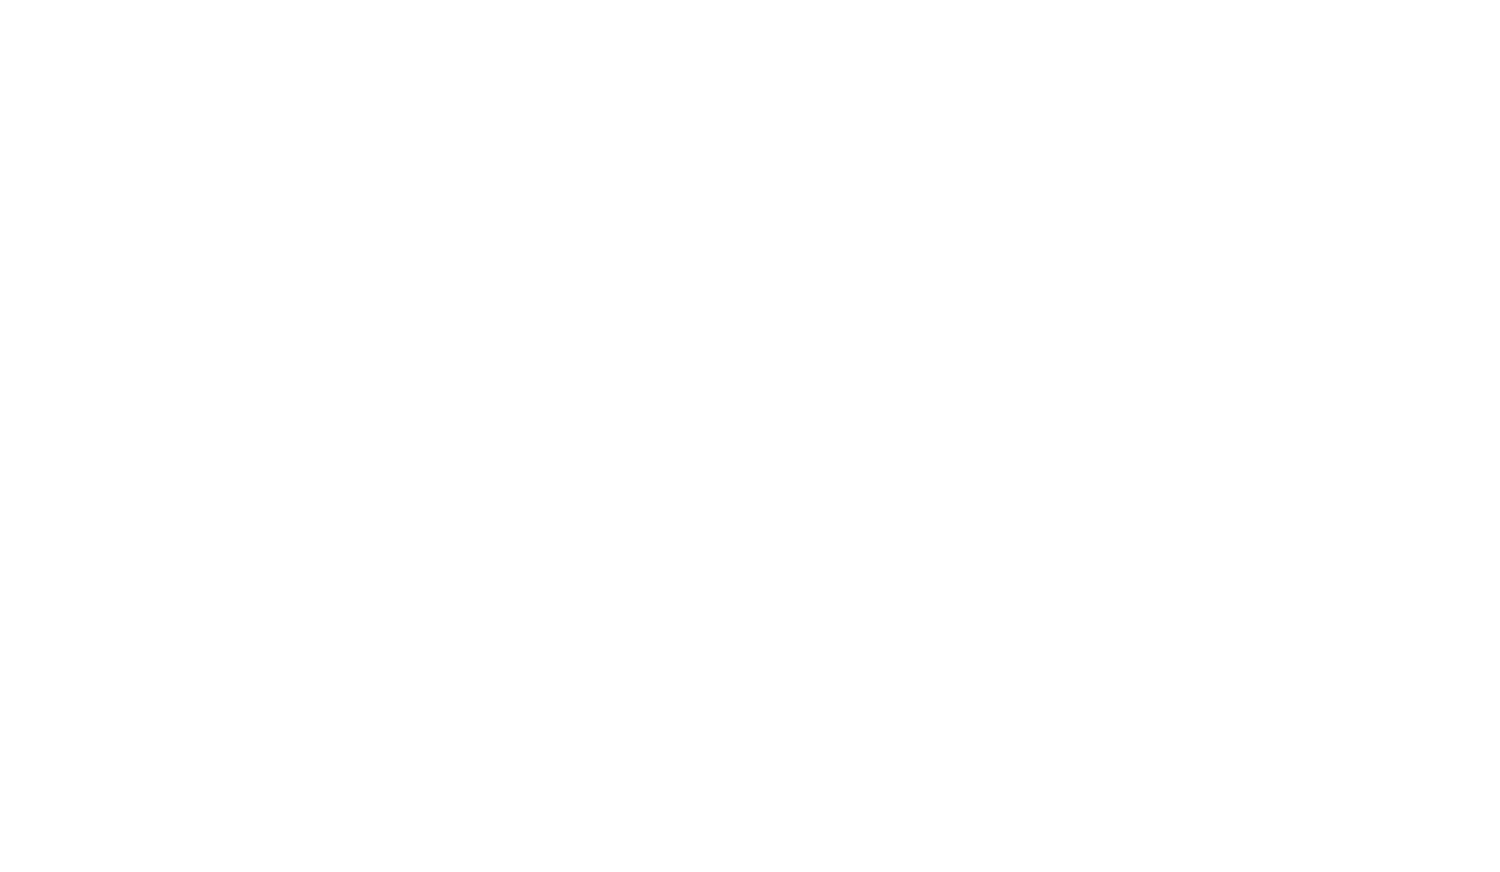 Serve City Volleyball